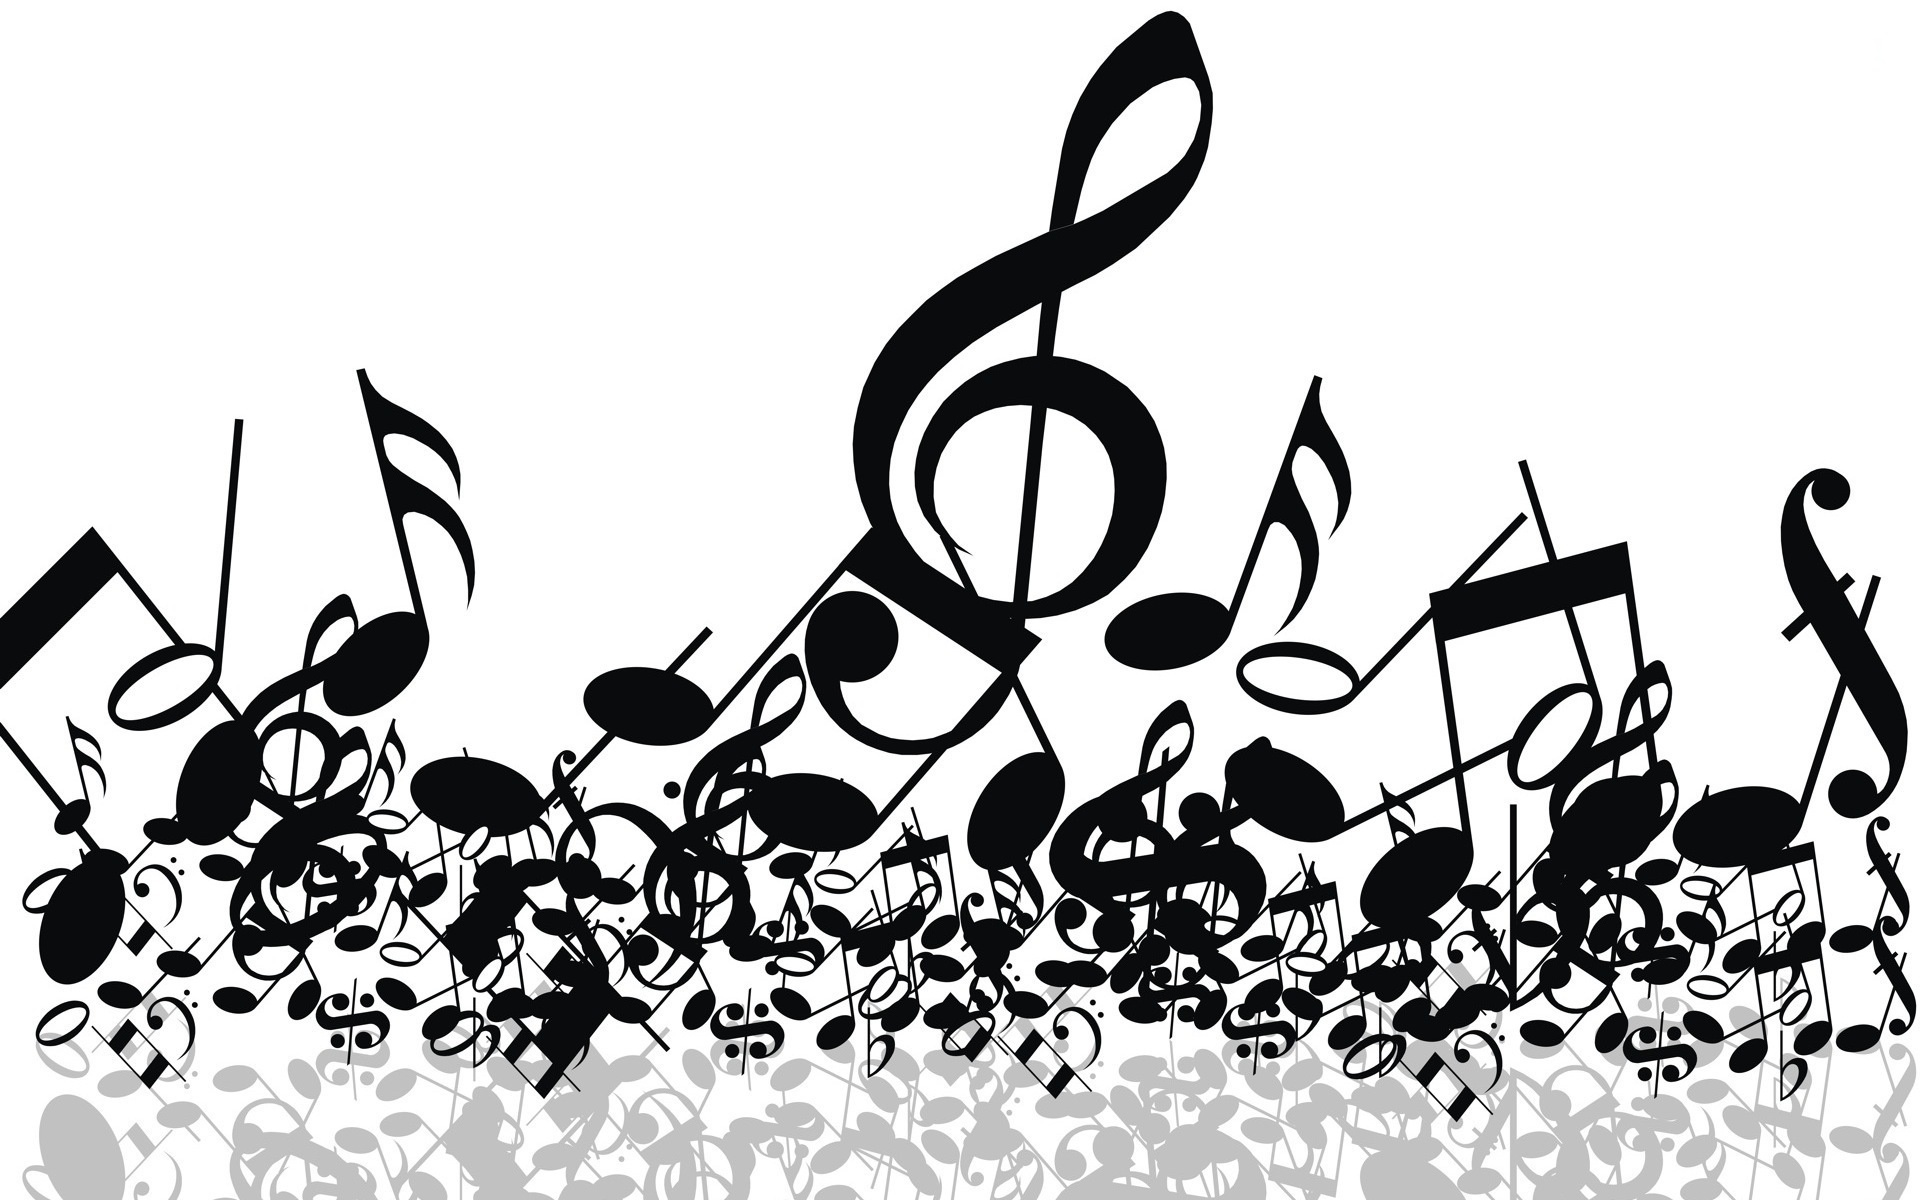 Band fulton science academy. Clipart music concert